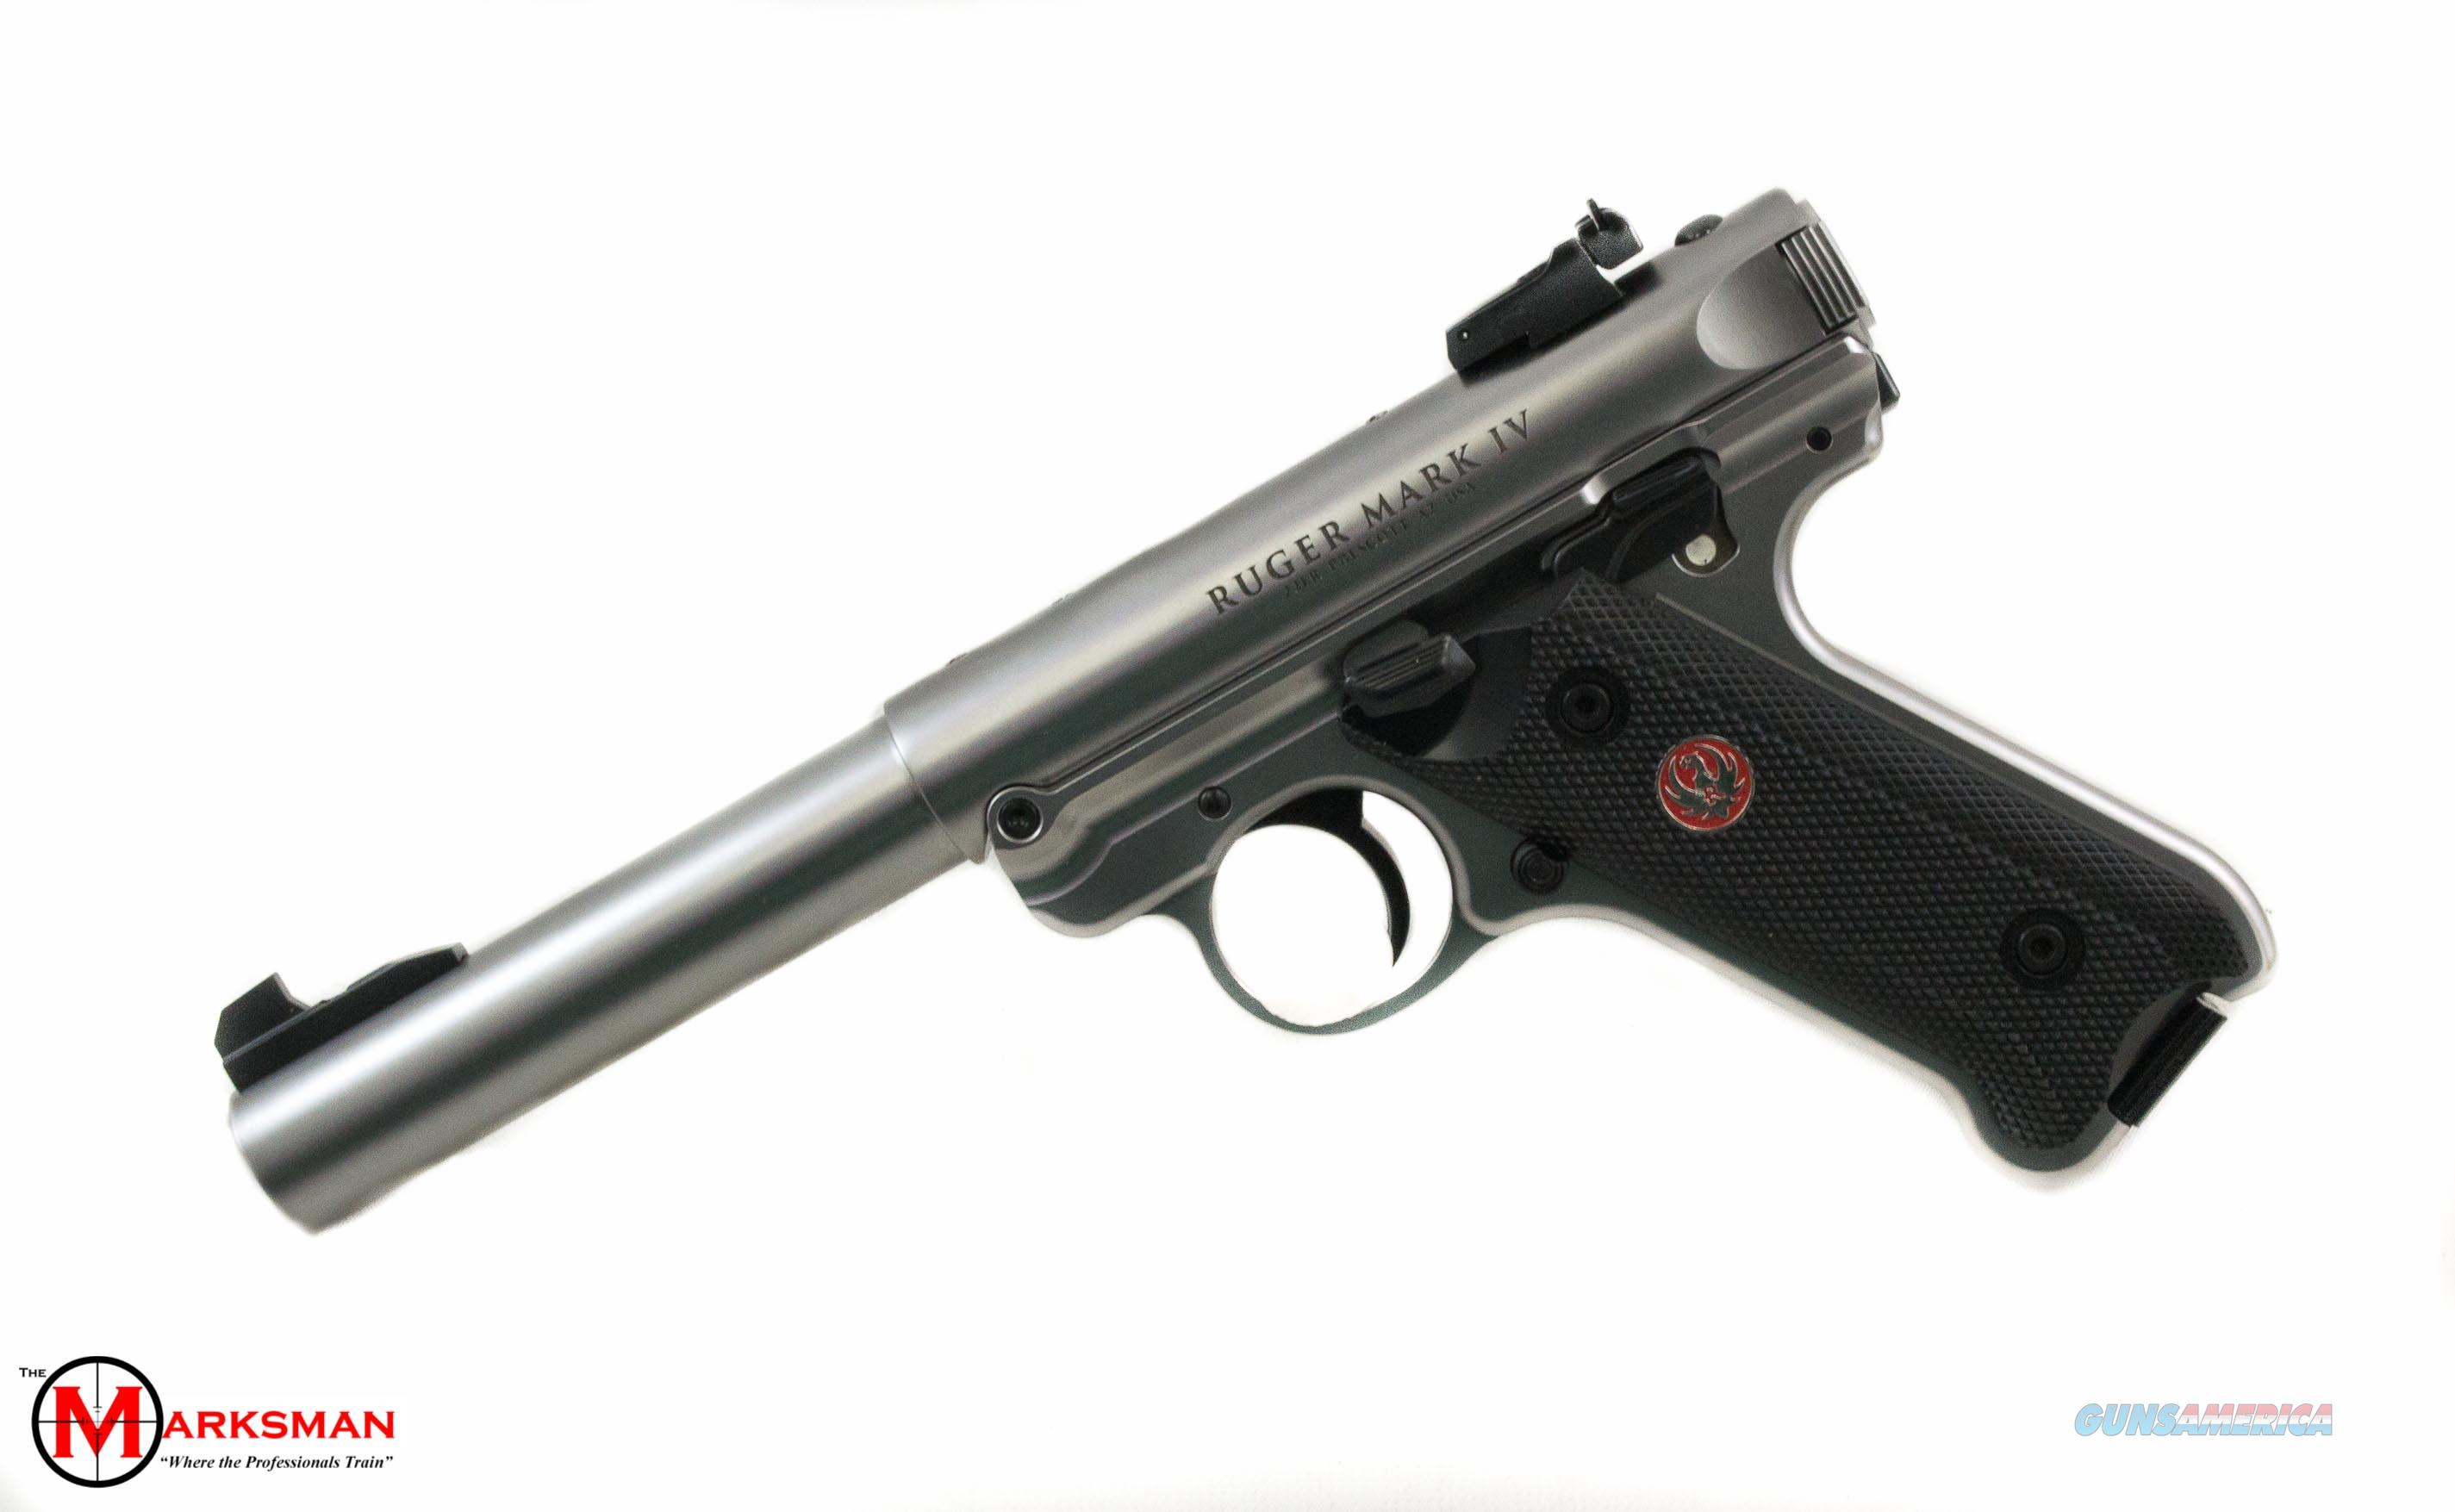 Ruger Mark IV Target .22 lr NEW  Guns > Pistols > Ruger Semi-Auto Pistols > Mark I/II/III/IV Family